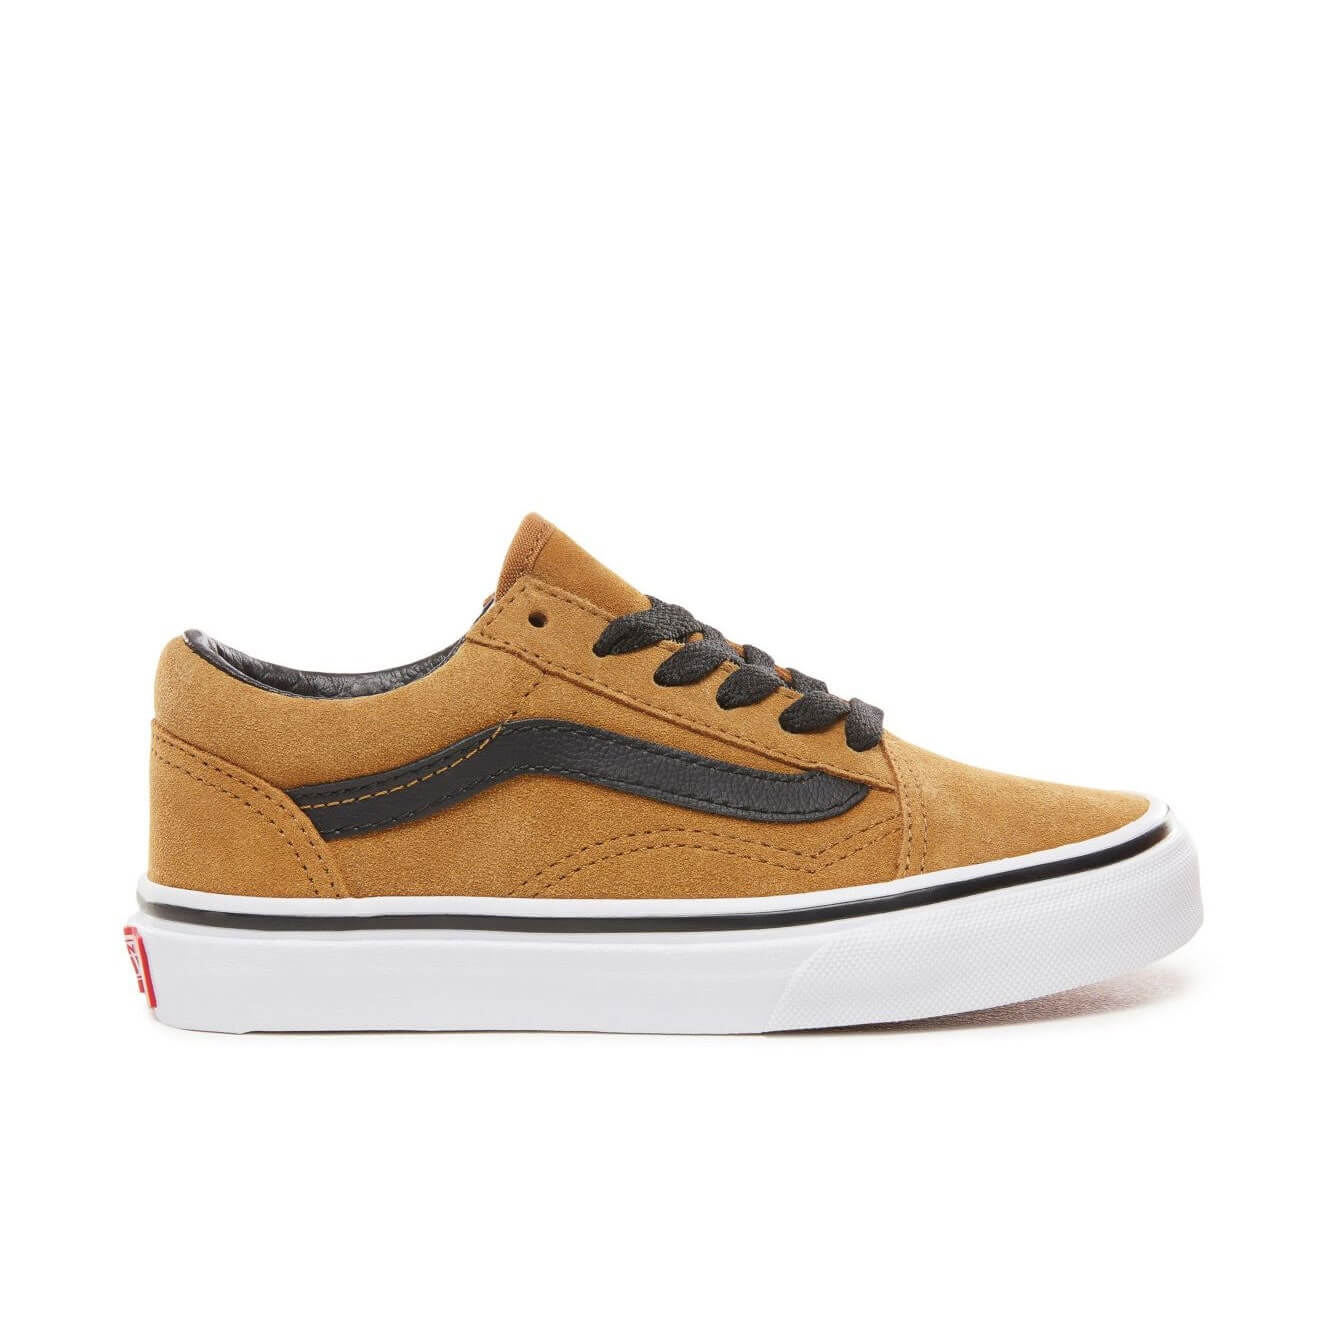 Vans Kids Old Skool V Shoes - Cumin / Black (5+ yrs) - Side